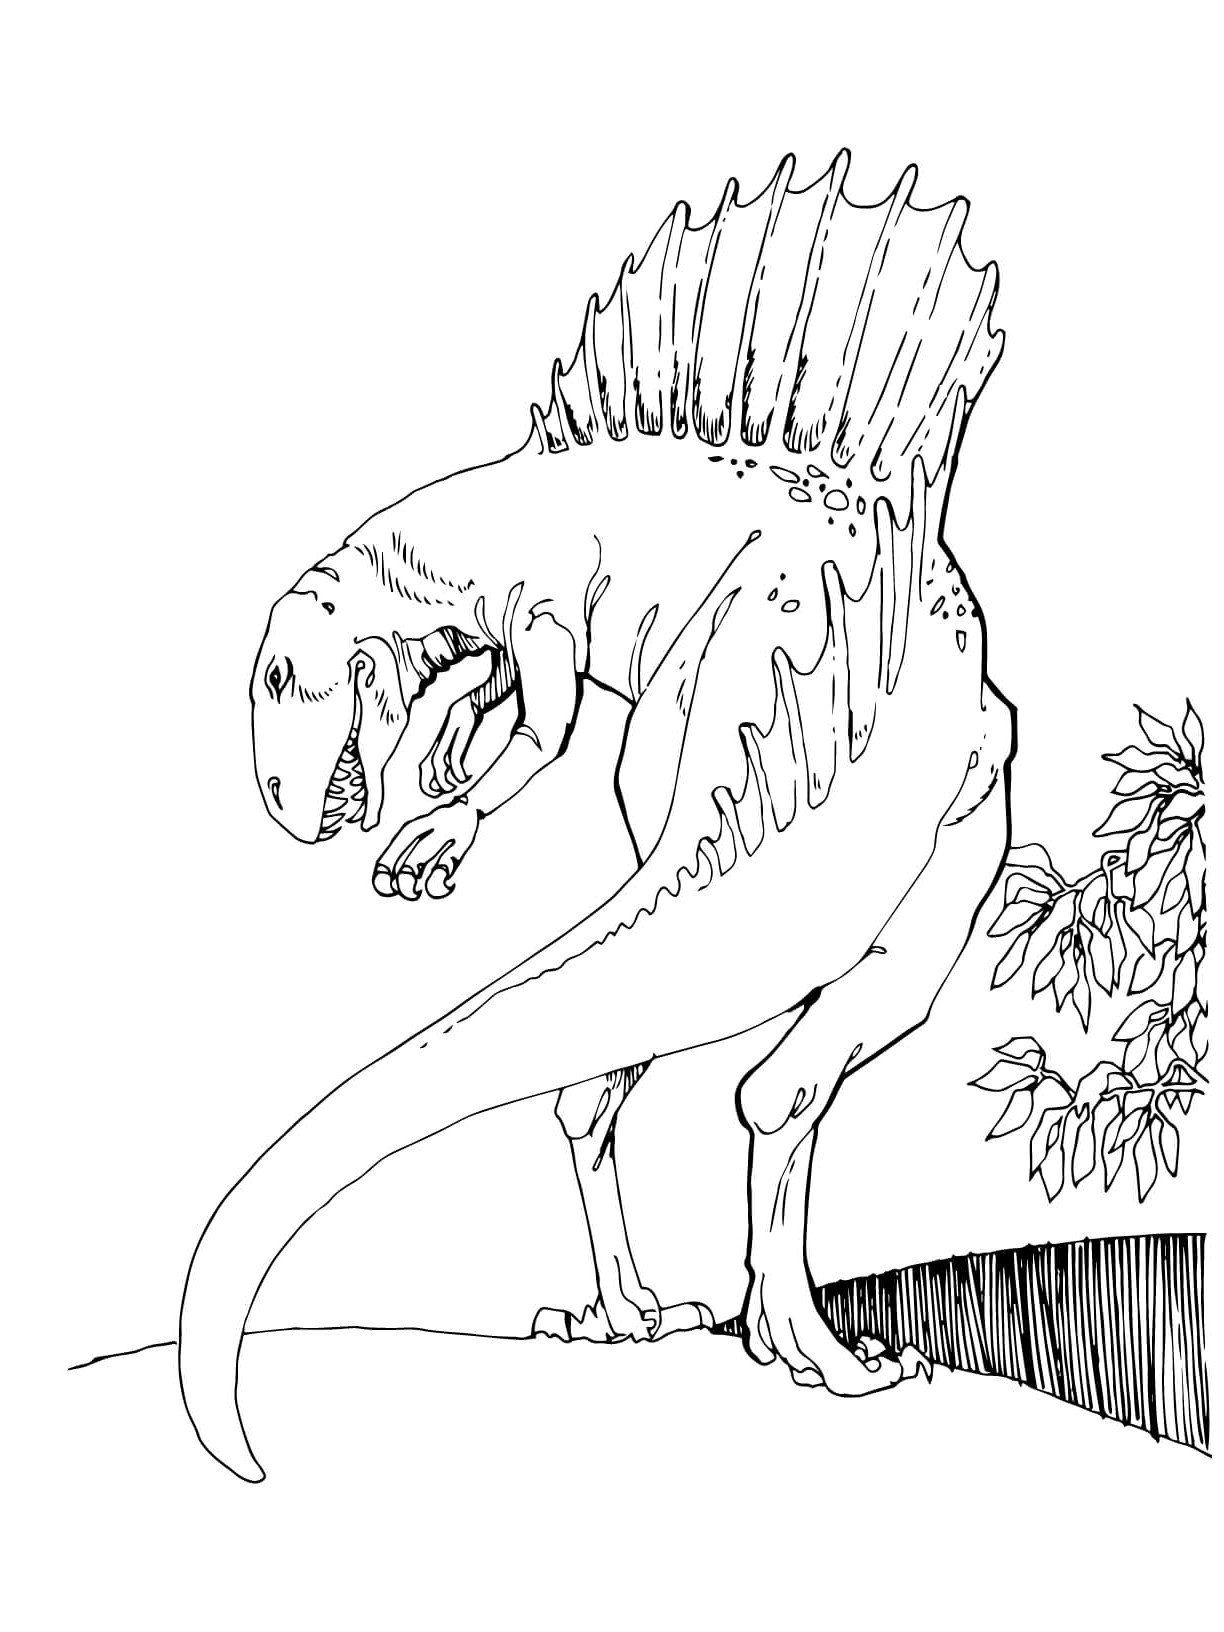 Jurassic World Coloring Pages Jurassic World Coloring Pages Best Coloring Pages For Kids Dinosaur Coloring Pages Dinosaur Coloring Coloring Pages For Kids